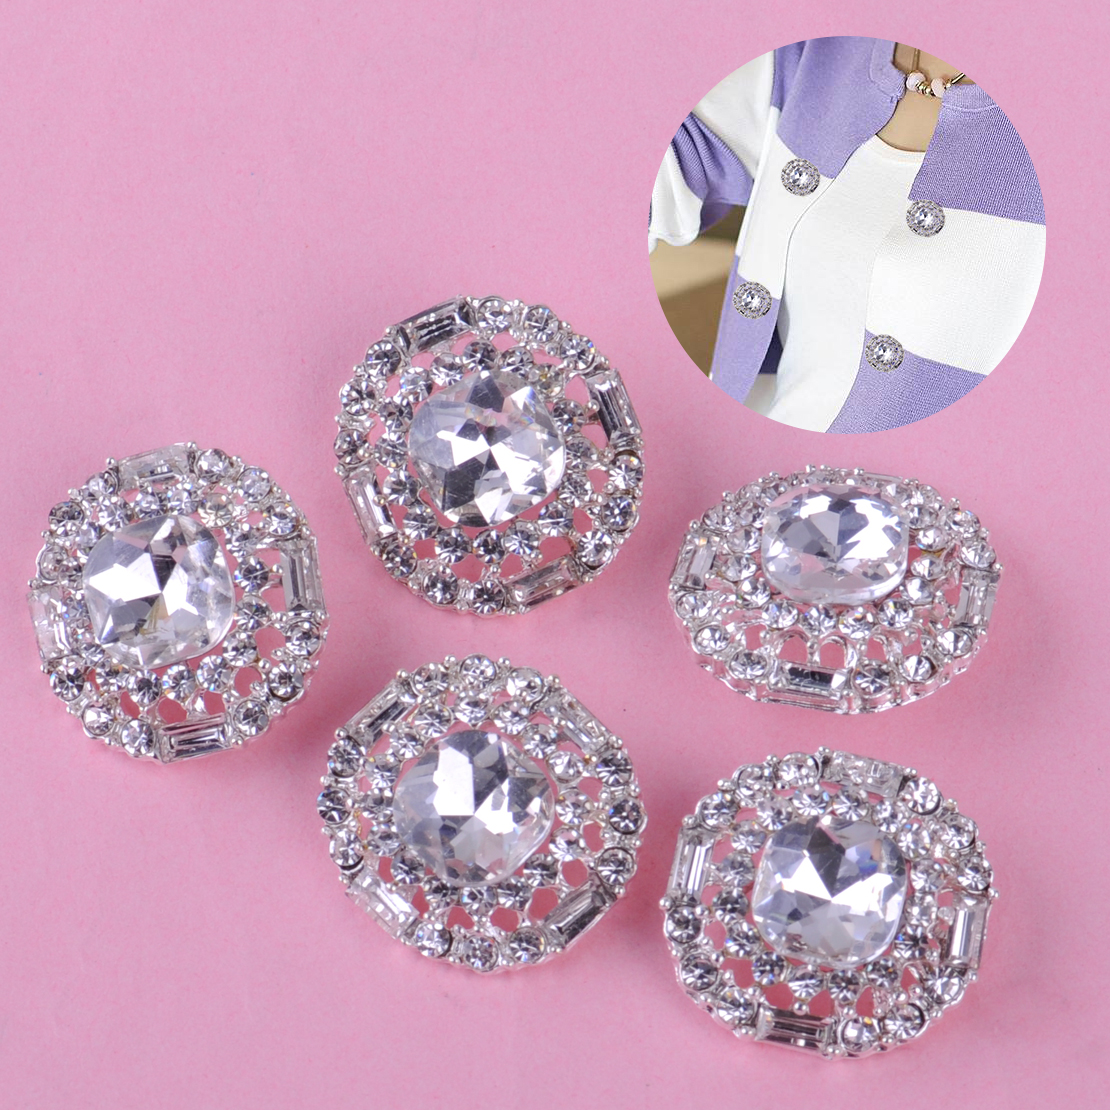 10 x OVAL CRYSTAL DIAMANTE EMBELLISHMENT WITH CRYSTAL AFFECT ACRYLIC CENTRE